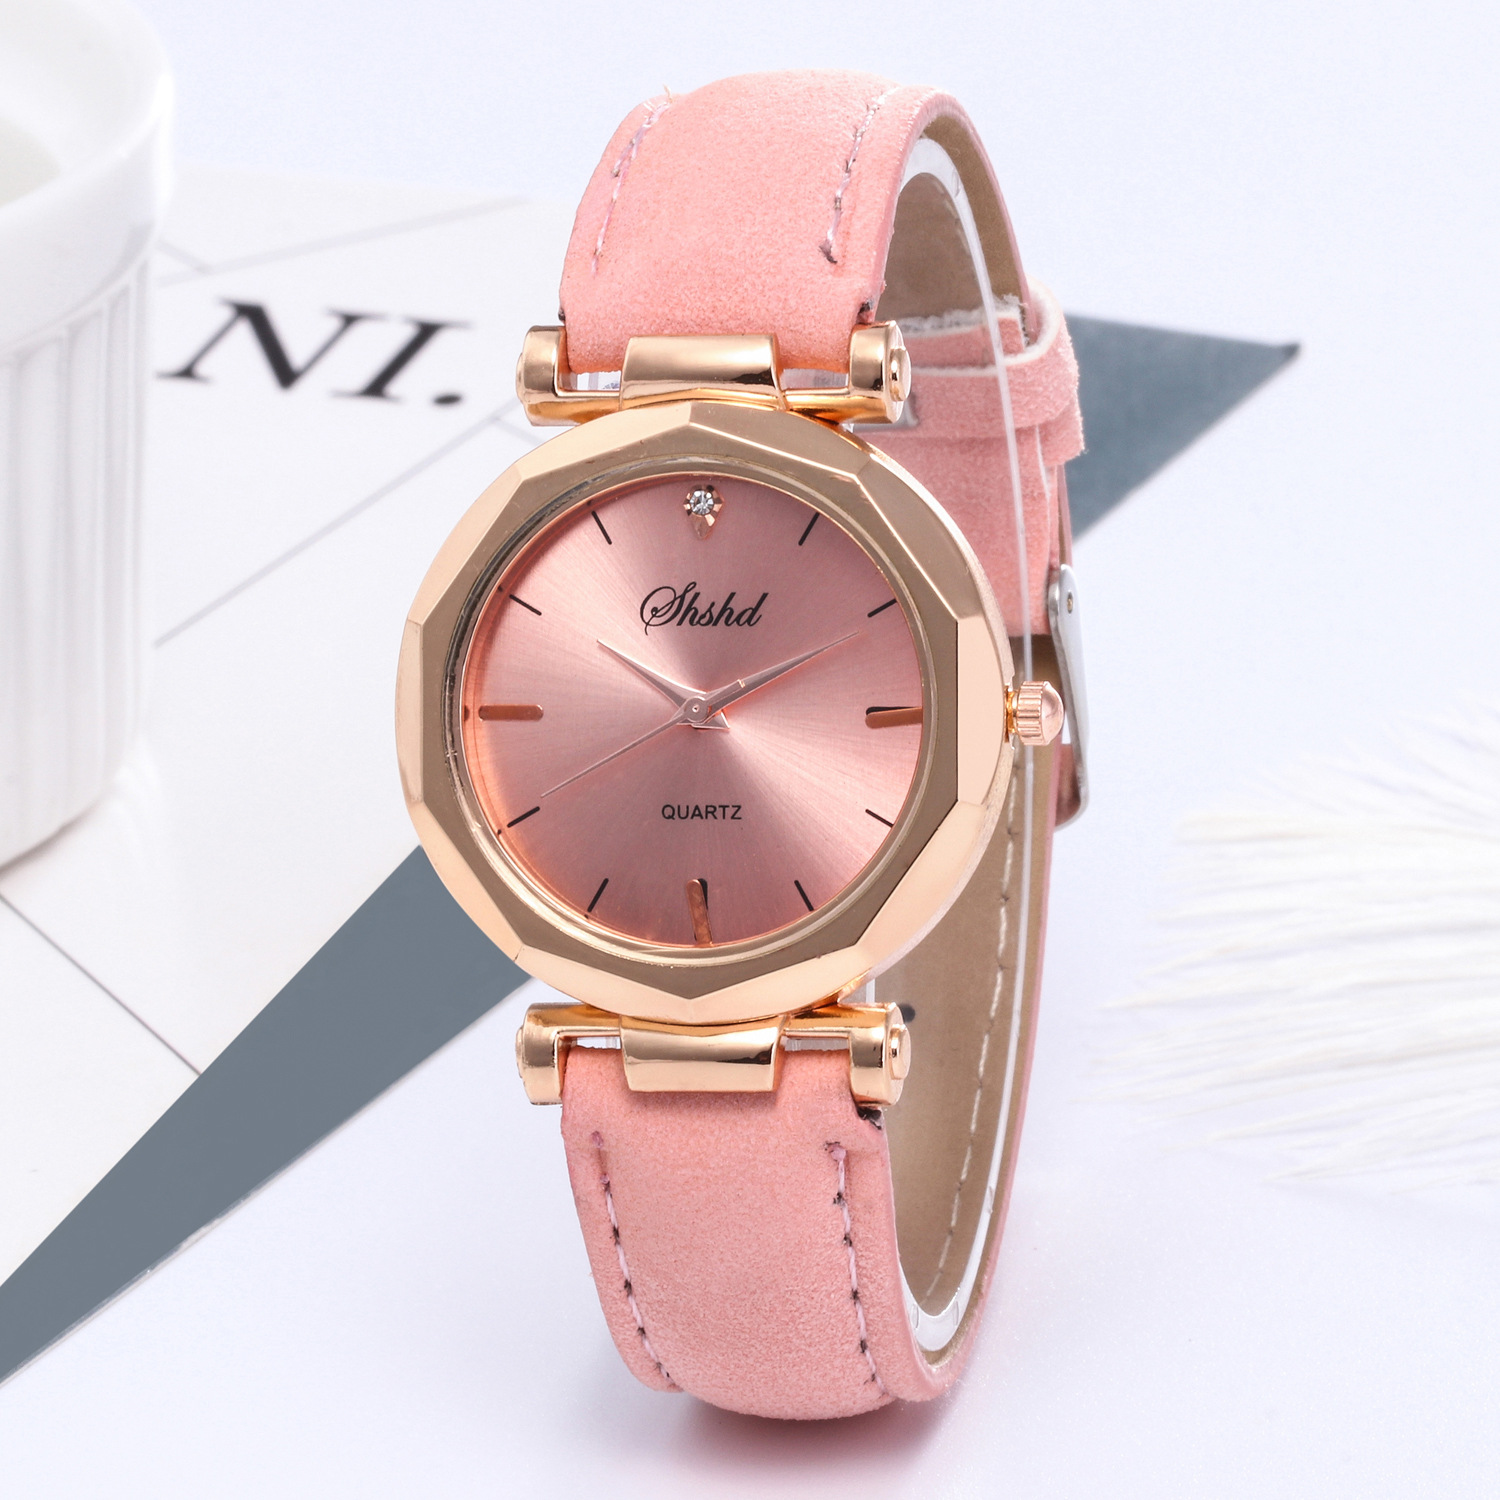 Fashion Women Leather Casual Watch Luxury Analog Quartz Crystal Wristwatch Casual Female Wristwatch Luxury 2019 Reloj Mujer